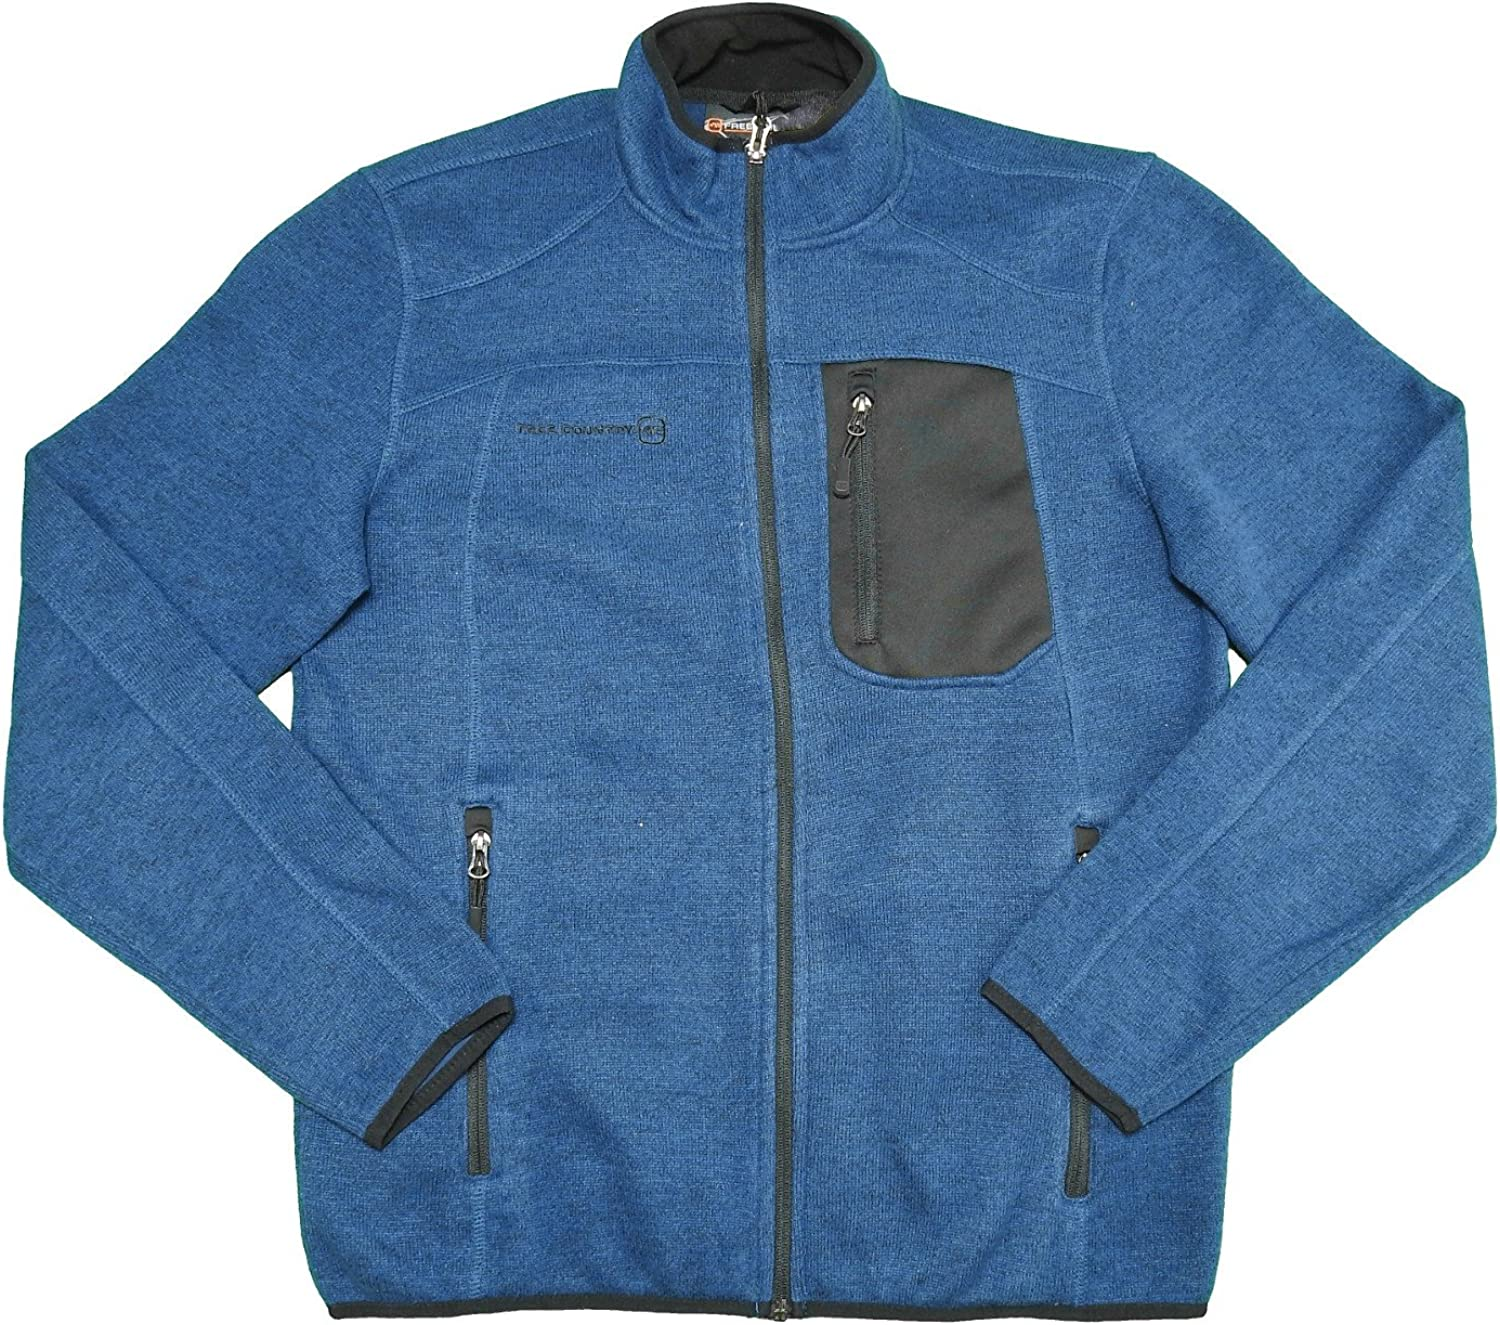 Free Country Mens Size Small Sweater Knit Fleece Jacket, Cold Blue